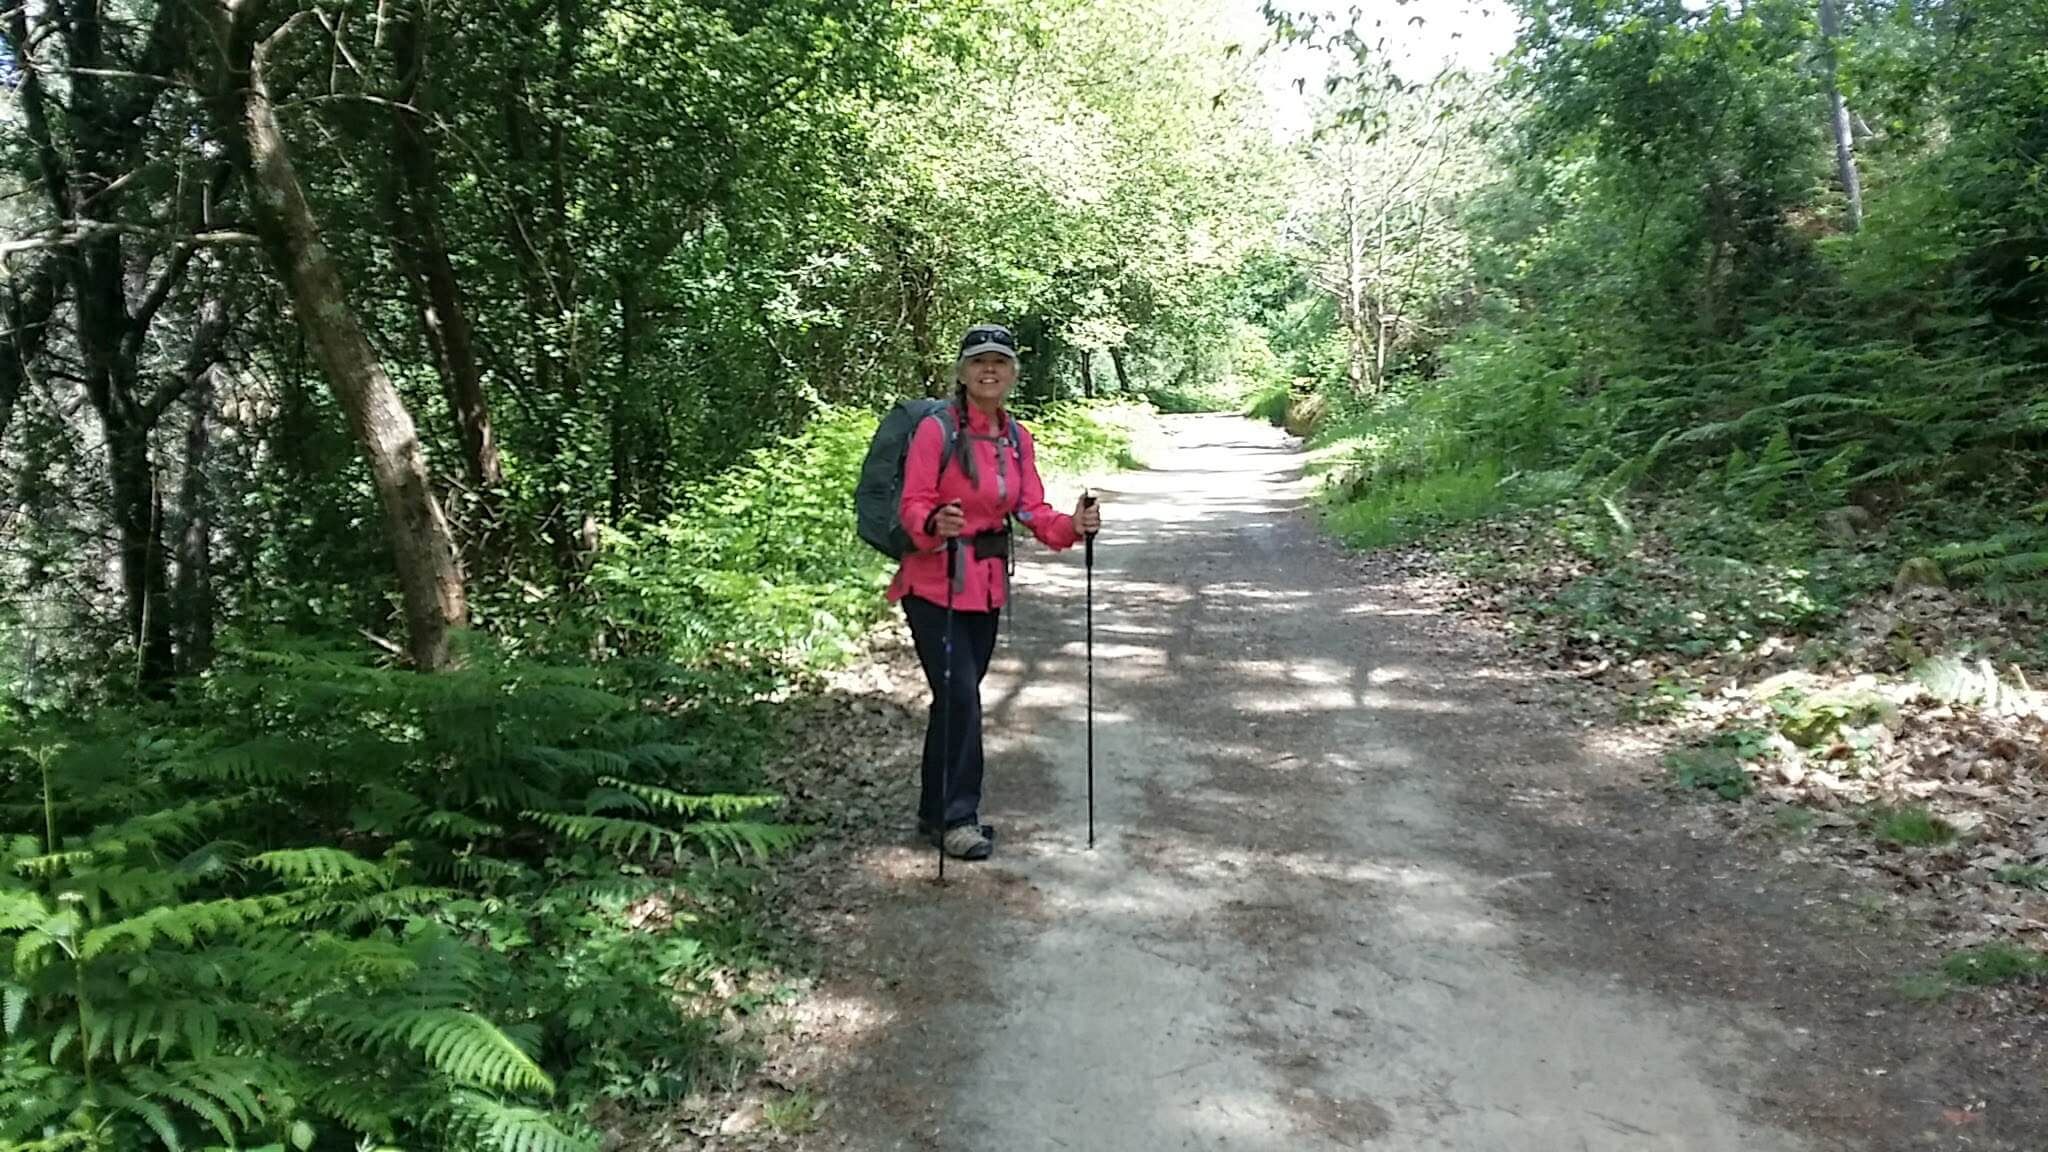 Elle on the Final Kilometers of the Senda da Auga on day twenty-one of the Camino Portugués